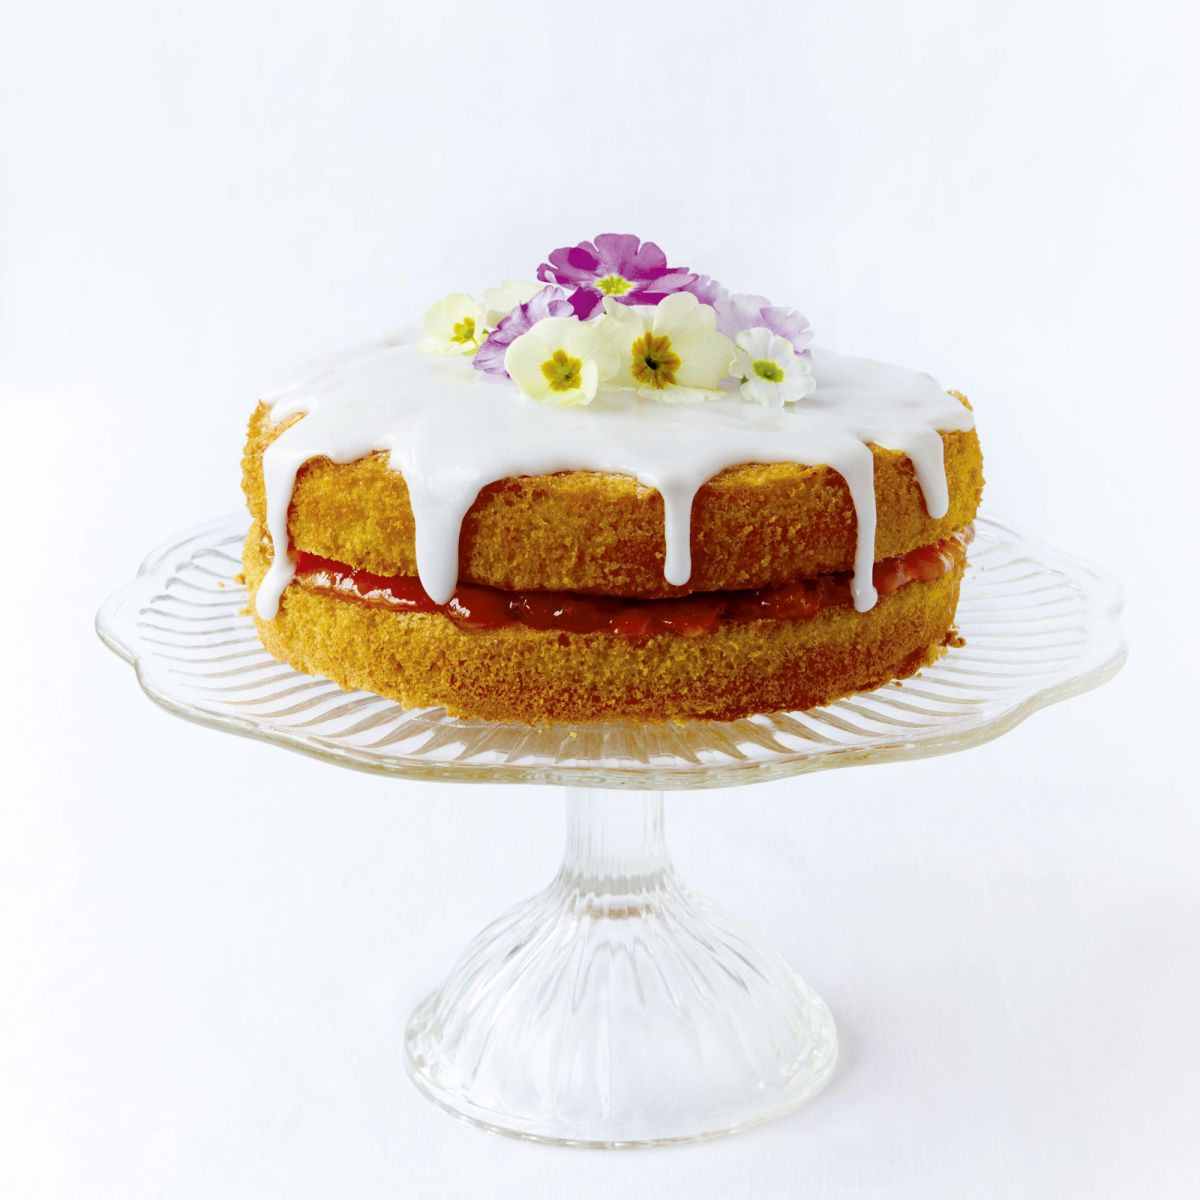 Try this brilliant Easter recipe for a gluten free Easter cake filled with apricot and raspberries